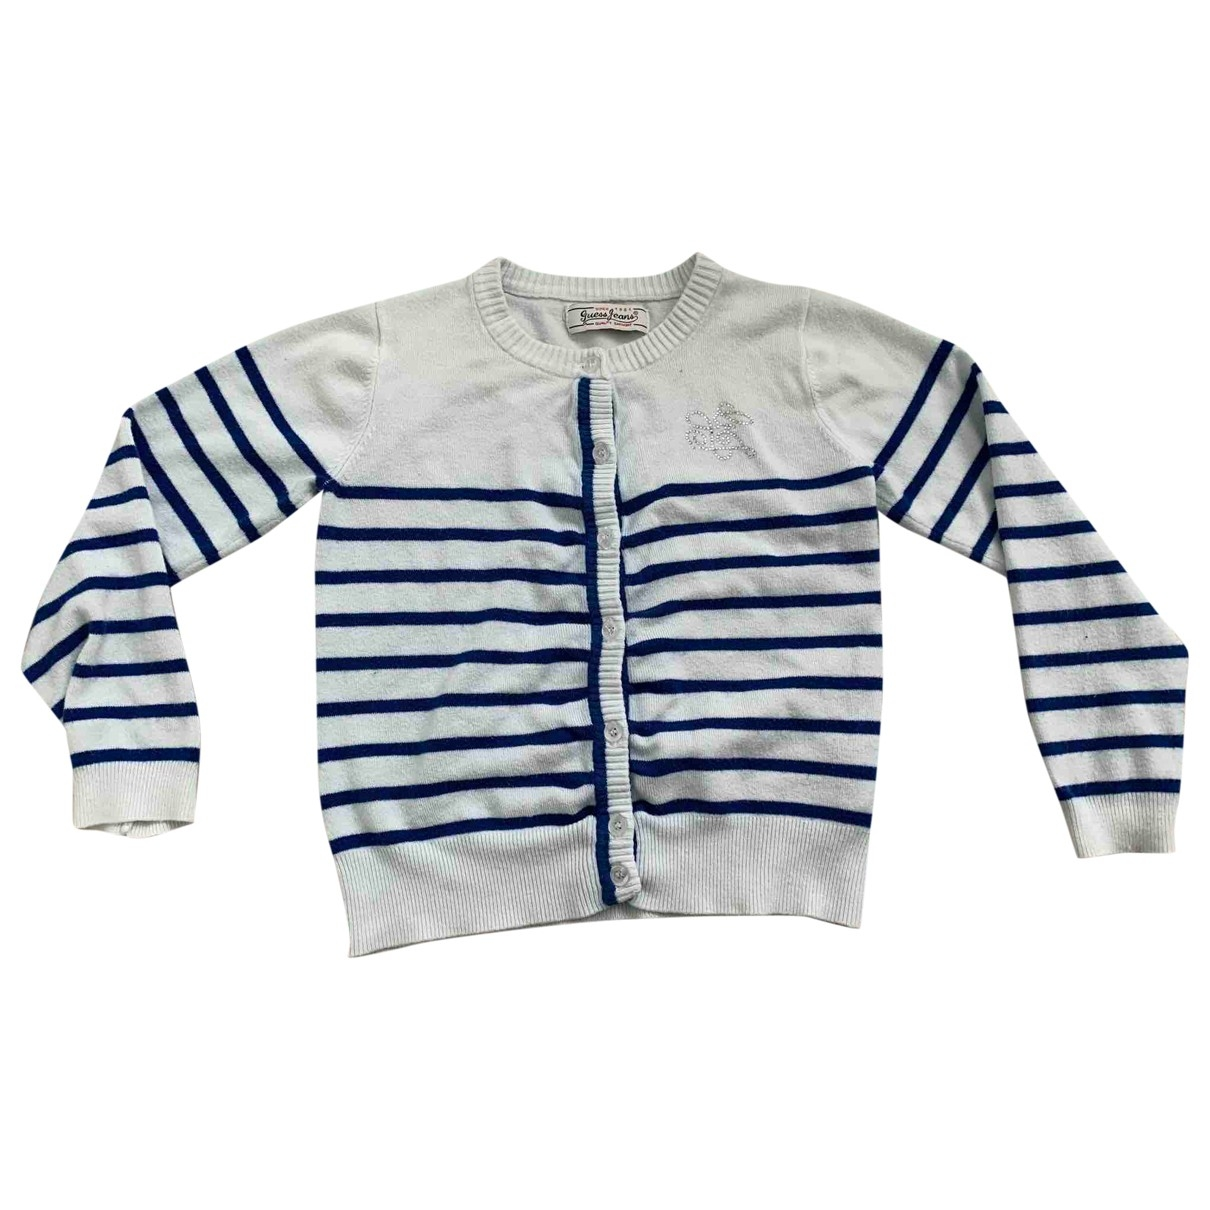 Guess \N White Knitwear for Kids 5 years - up to 108cm FR